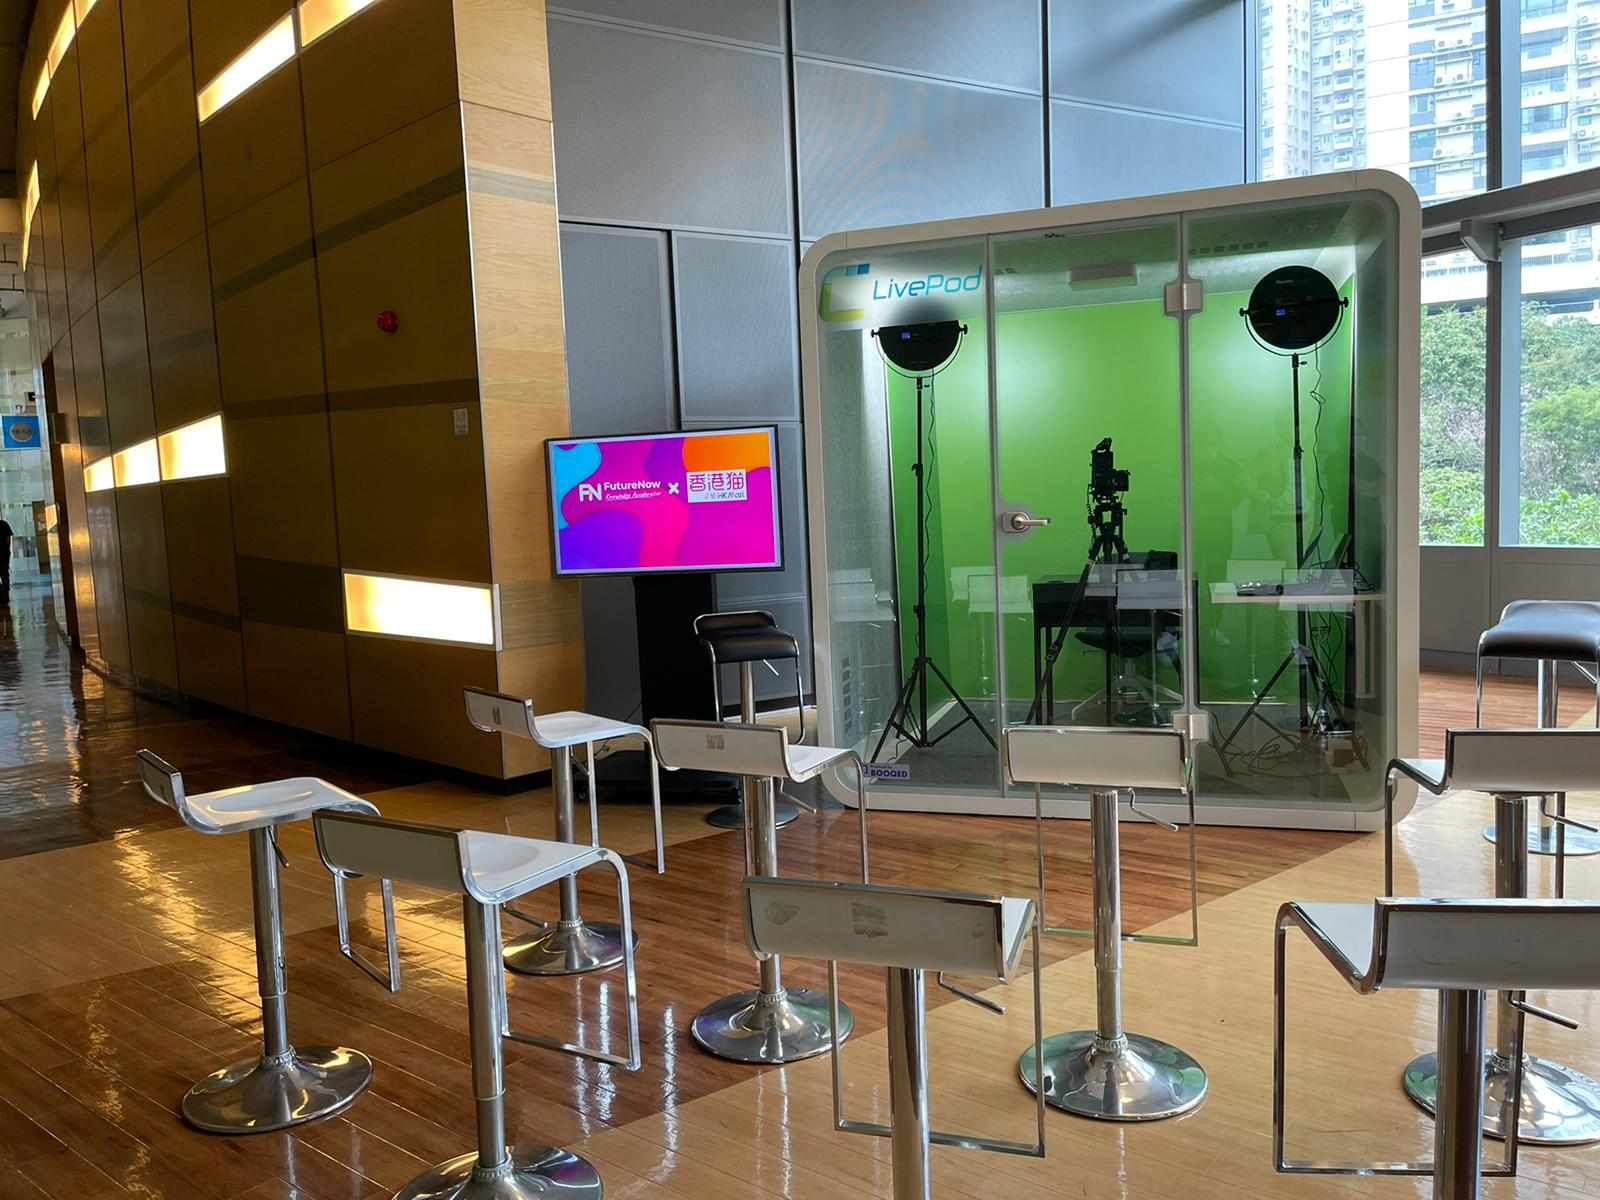 Live streaming pods Cyberport Hong Kong